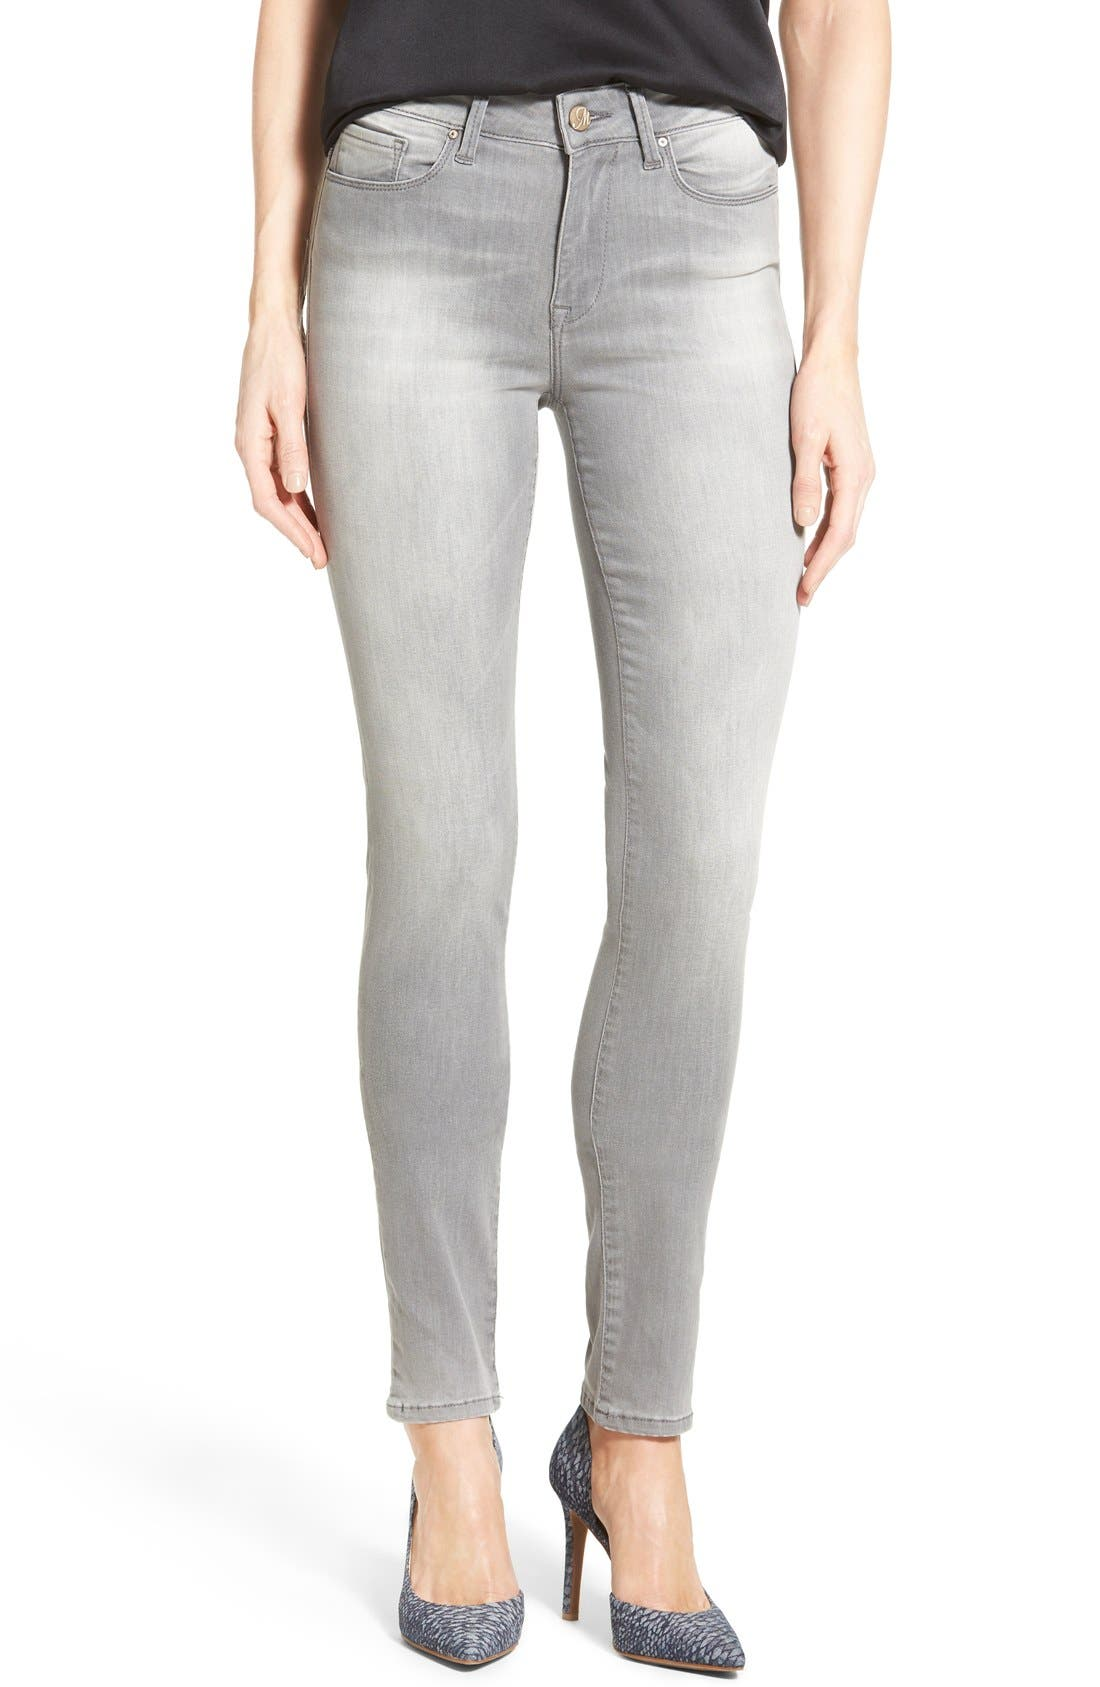 Main Image - Mavi Jeans 'Alissa' Stretch Skinny Jeans (Light Grey Tribeca) (Petite)